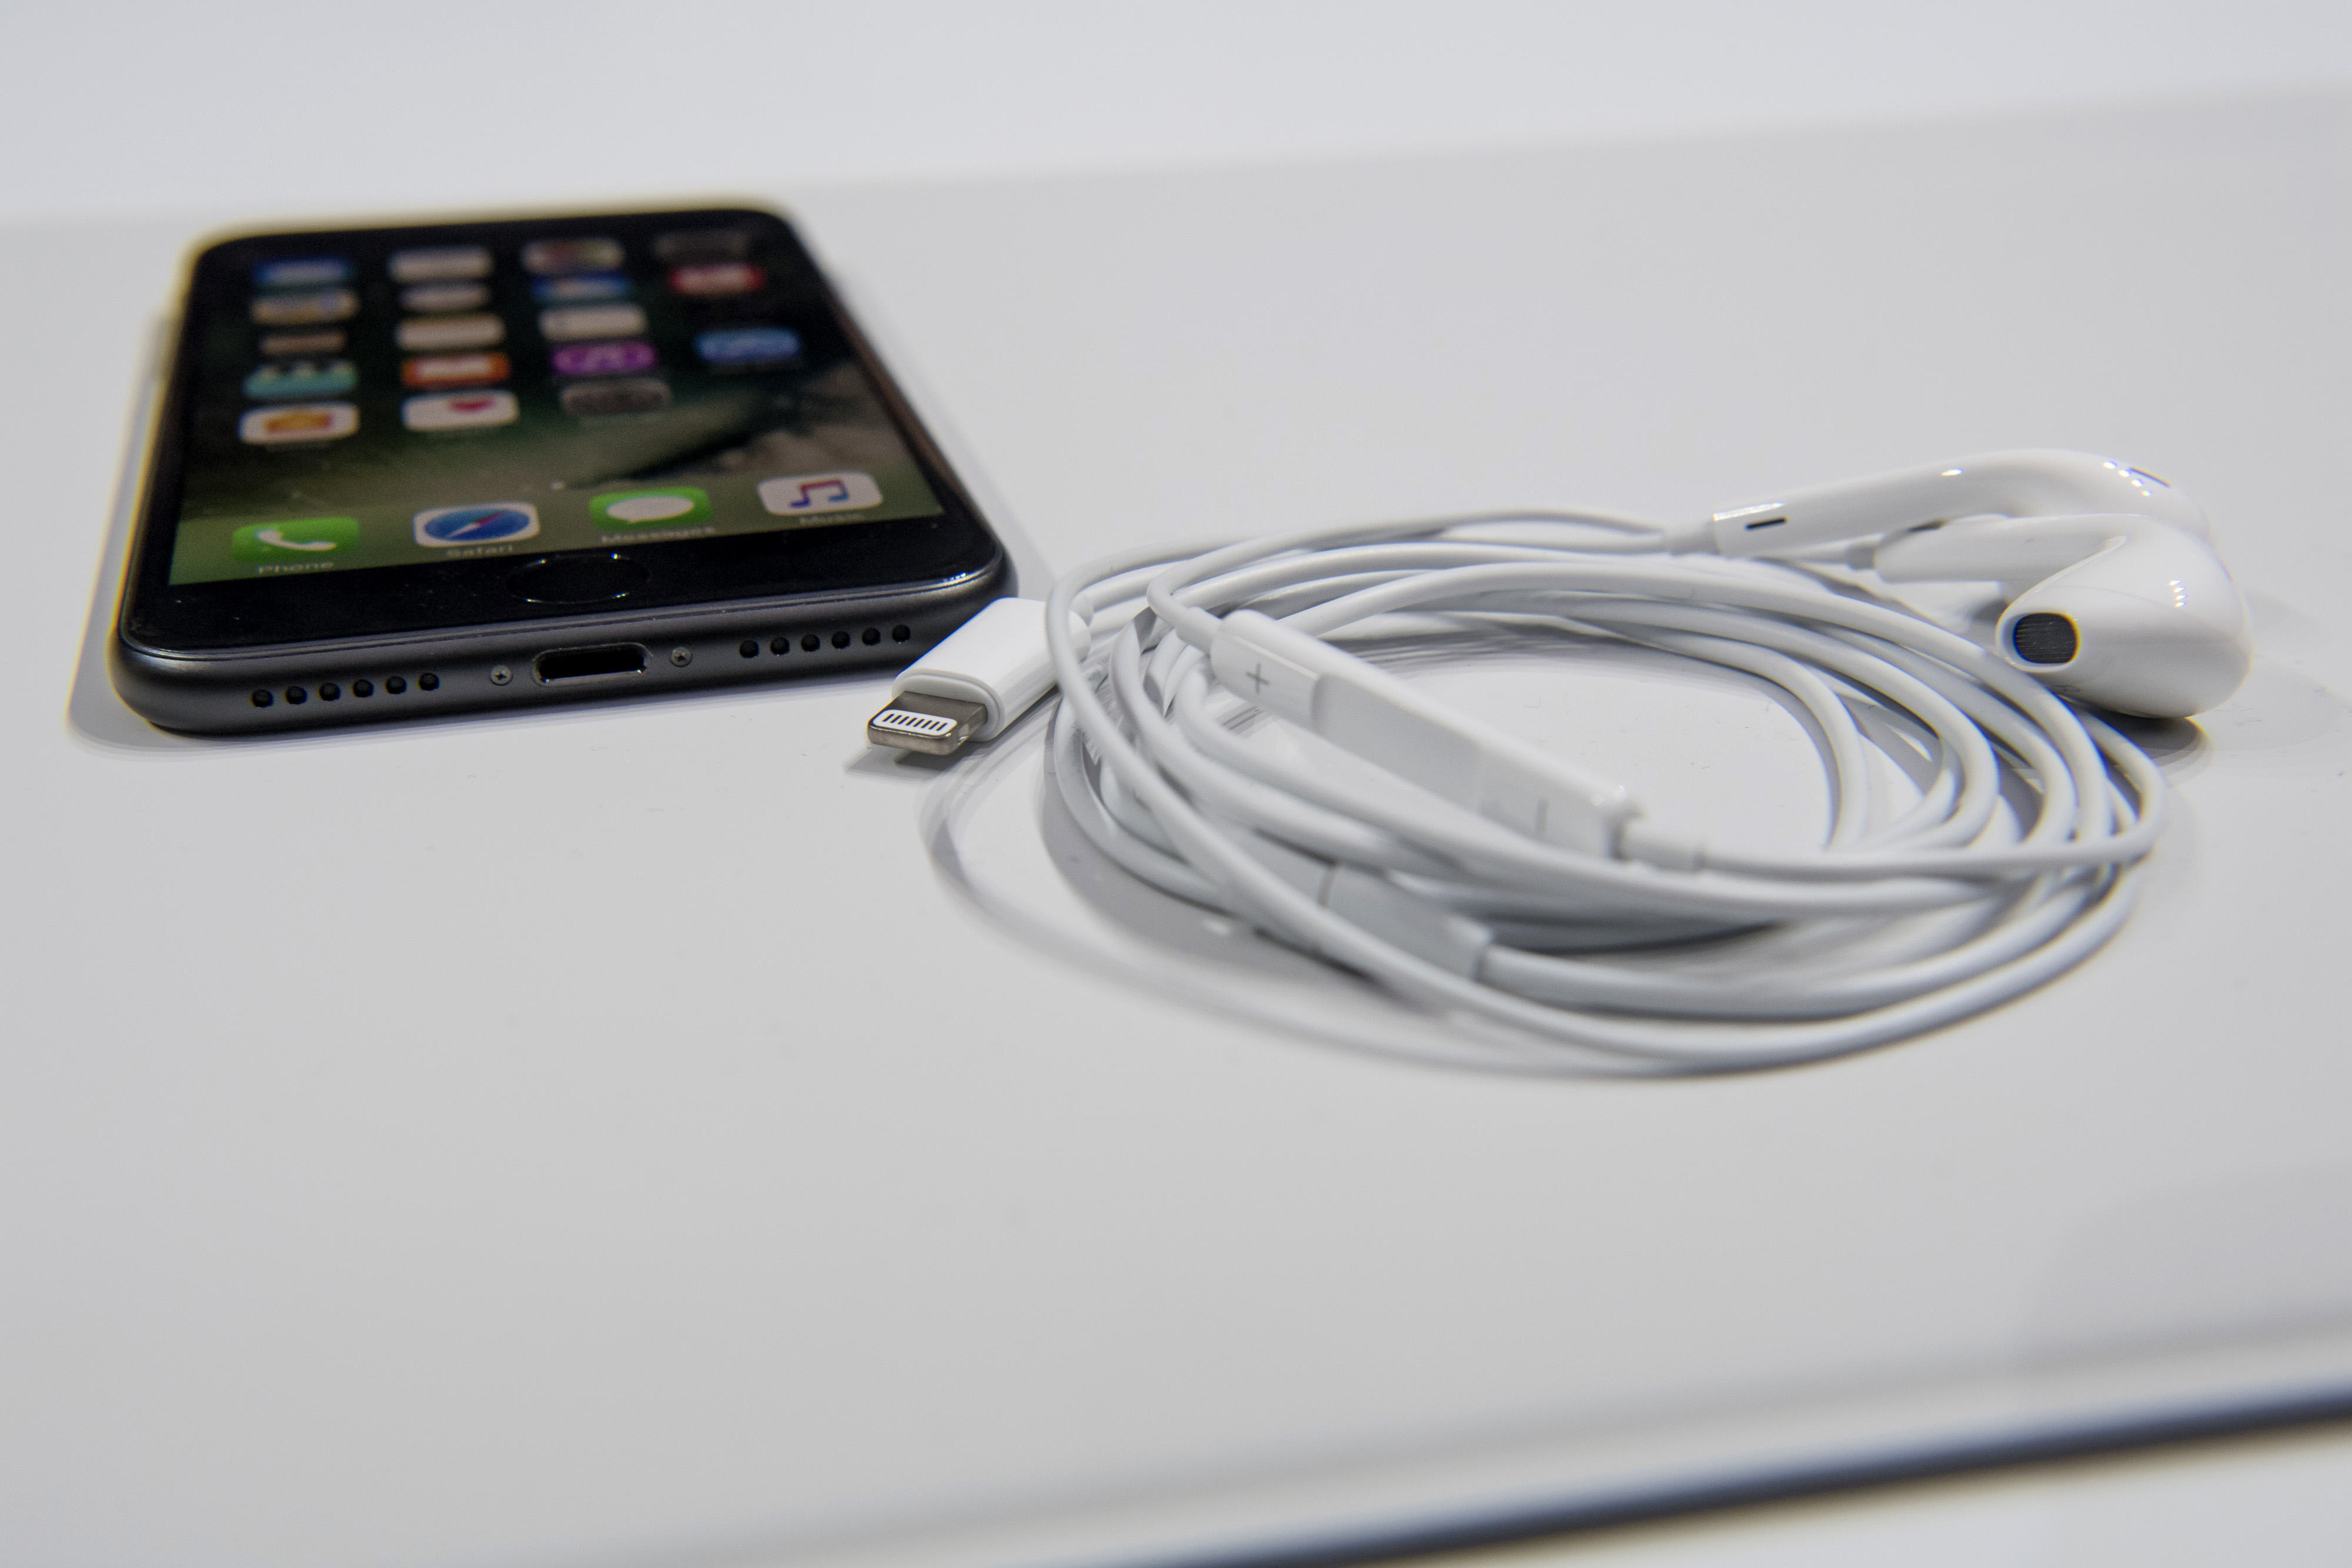 Apple Inc. EarPods headphones with lightning connection is displayed next to an iPhone 7 Plus during an event in San Francisco, California, U.S., on Wednesday, Sept. 7, 2016.